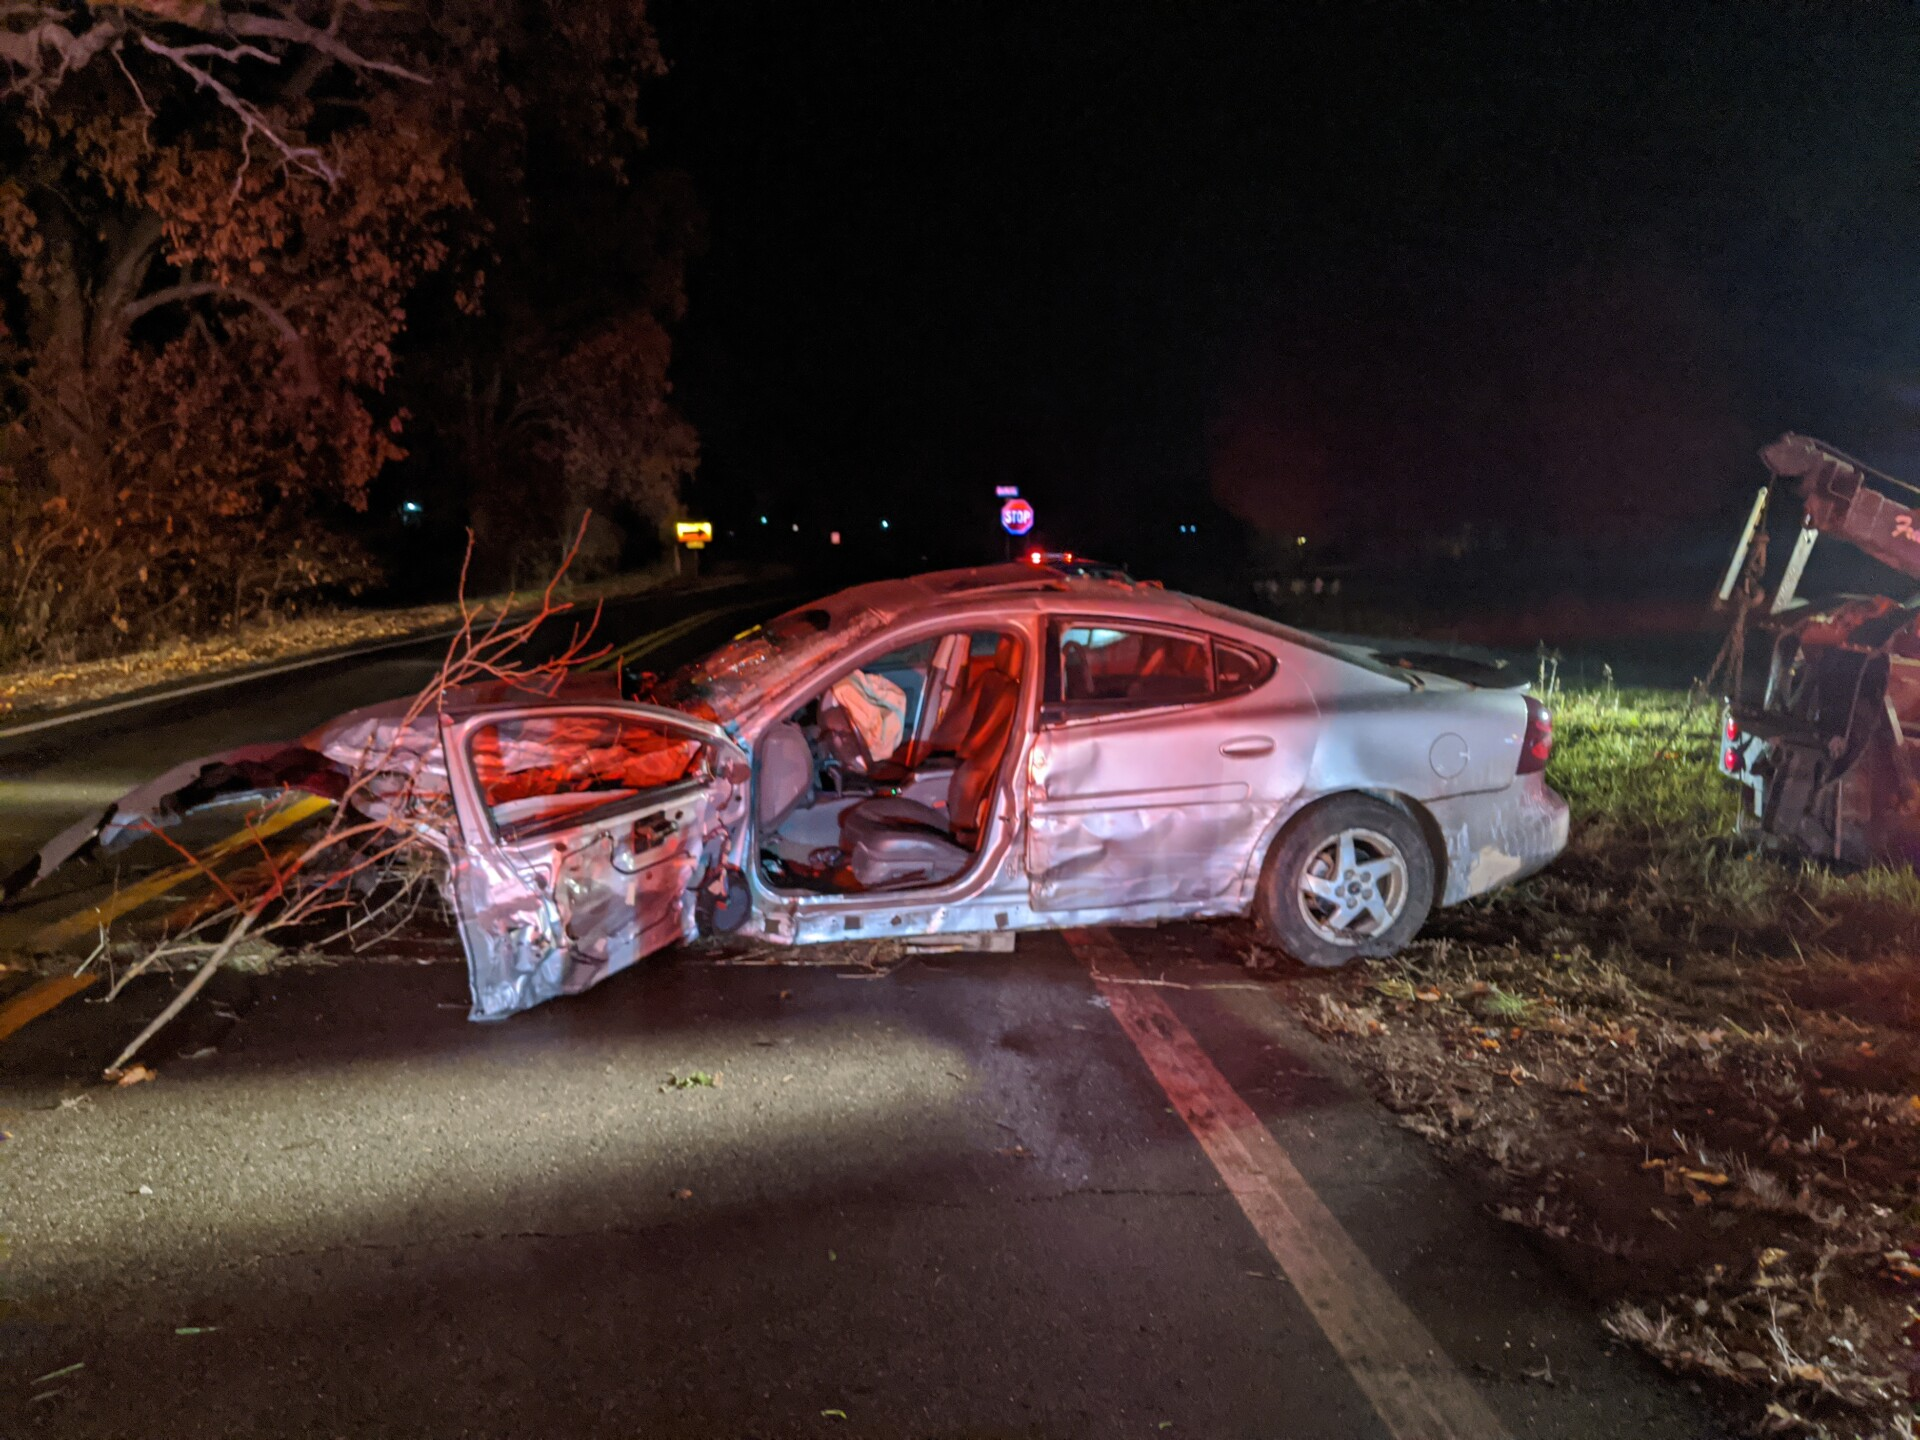 Photos: 2 injured in 3-vehicle drunk driving crash out of Cass Co.